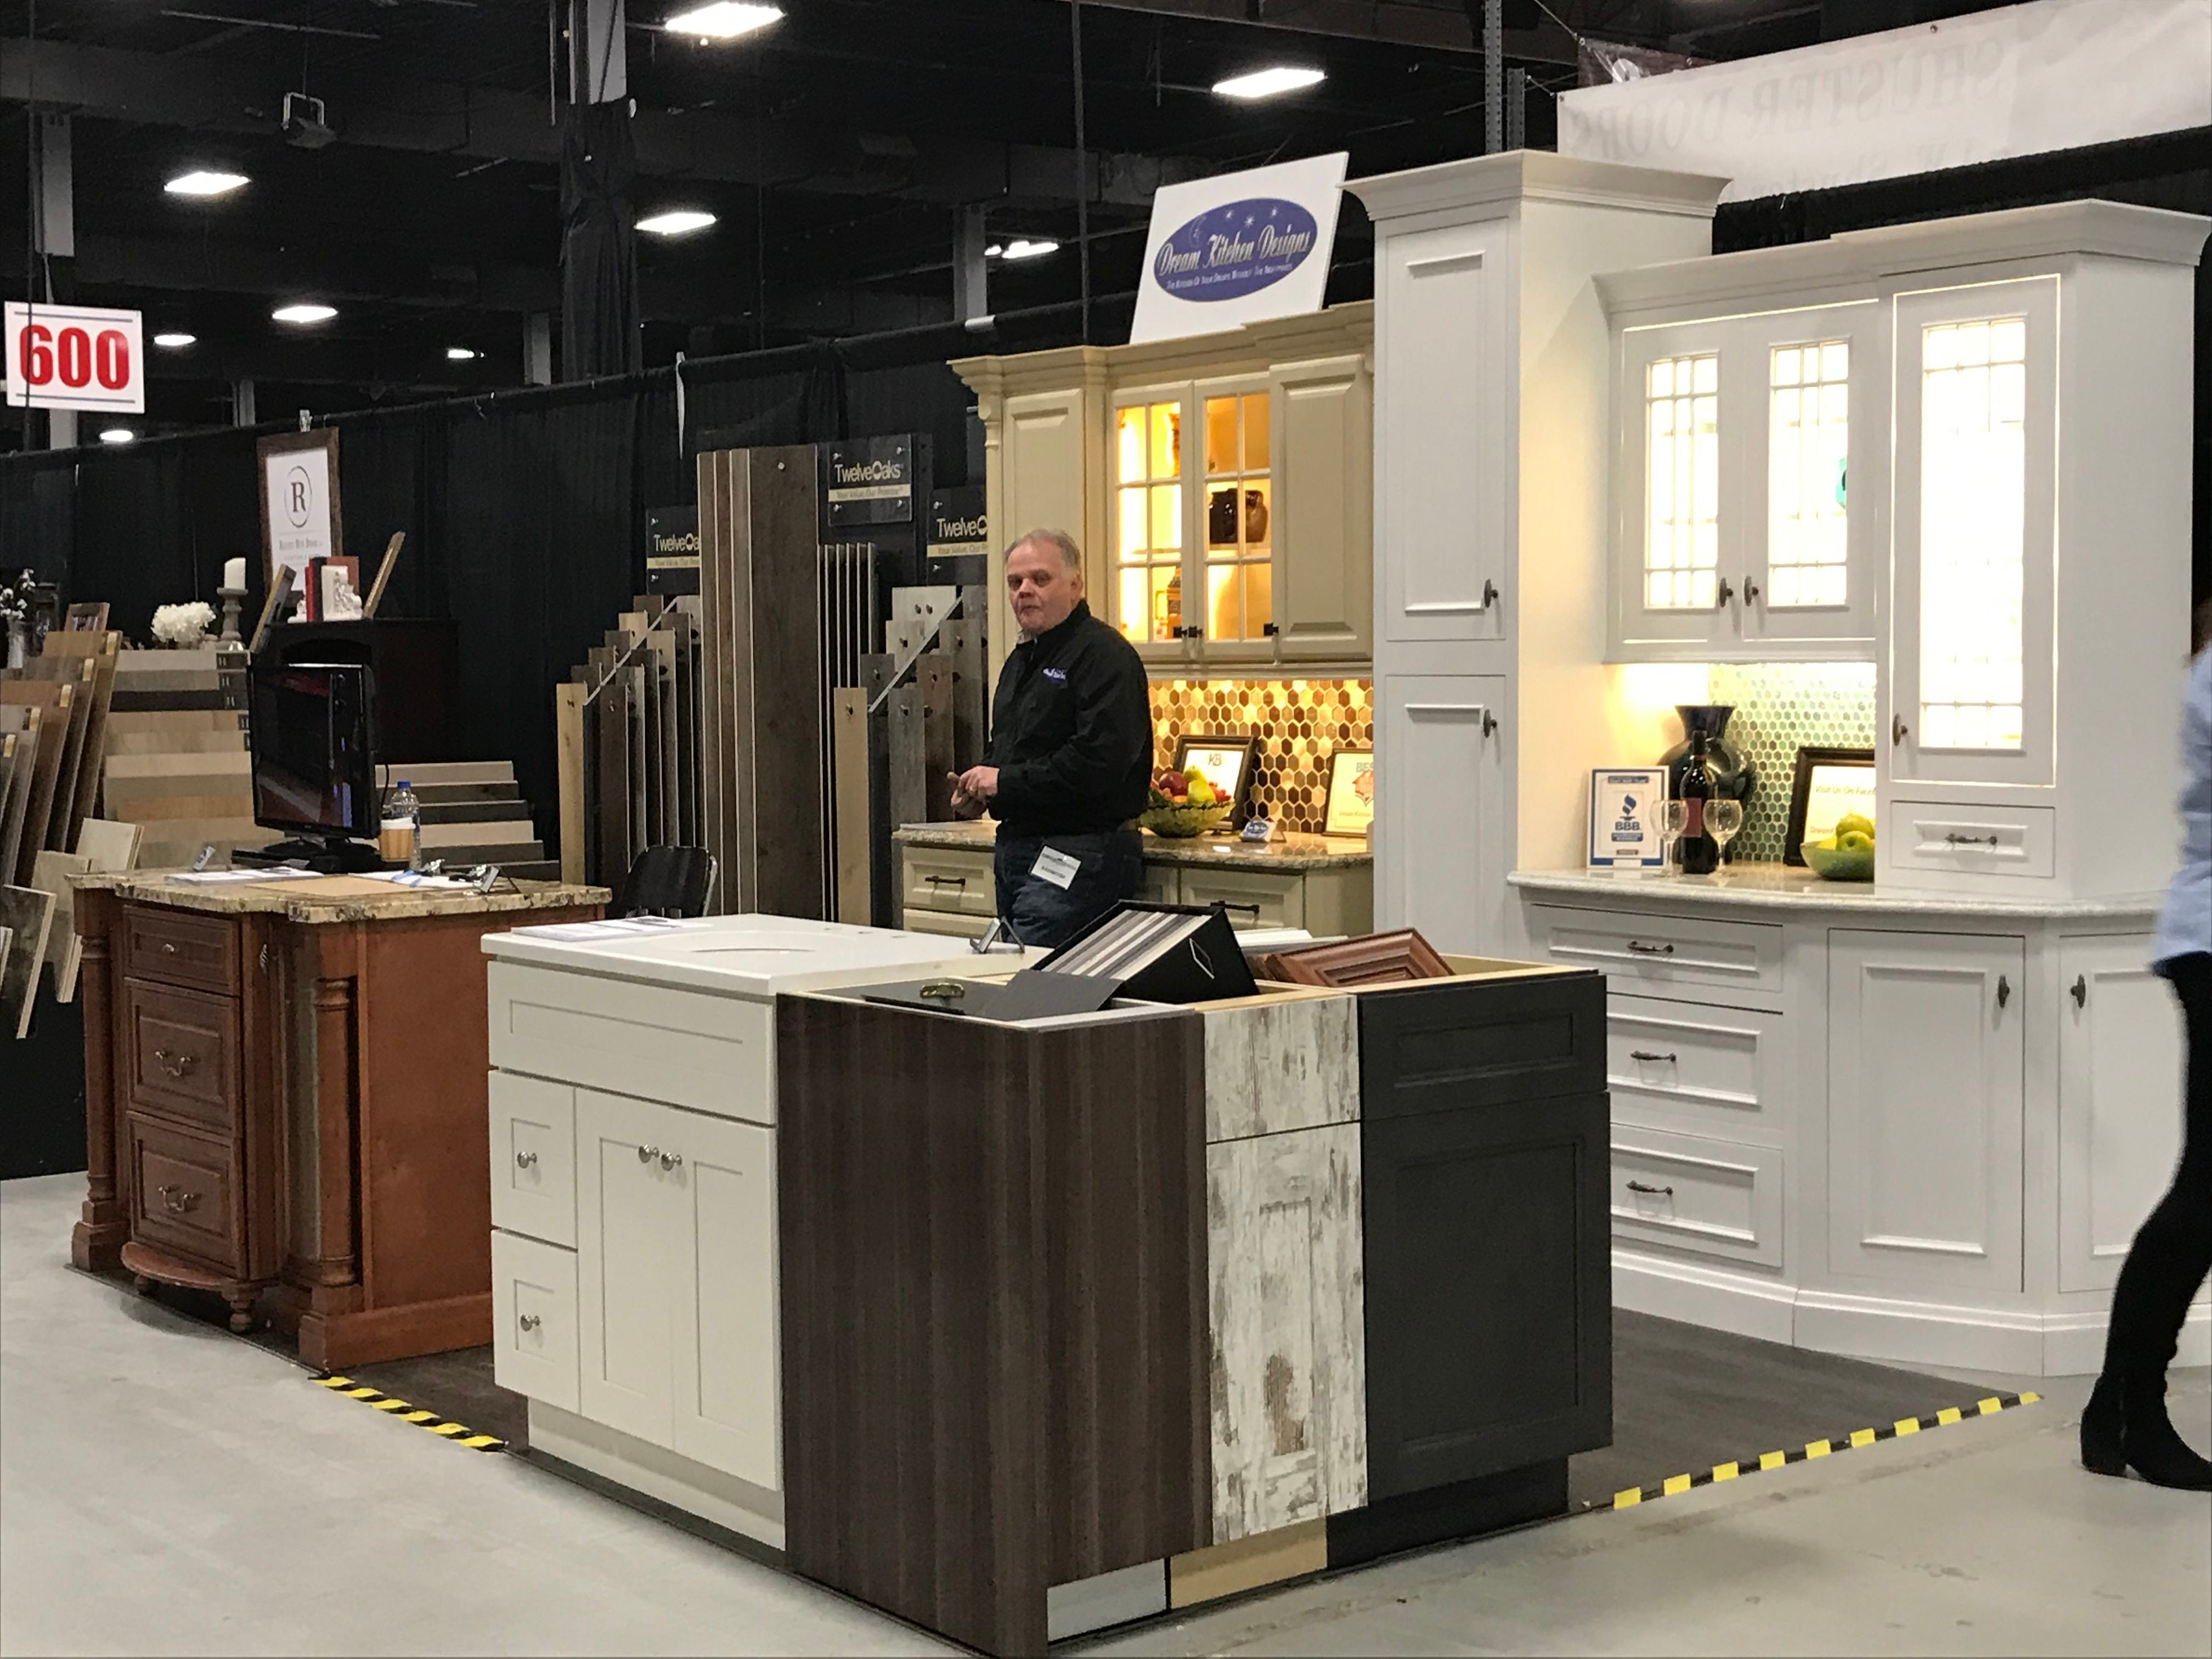 Beautiful The 30th Annual New Jersey Home Show Highlights Interior And Exterior Home  Designs